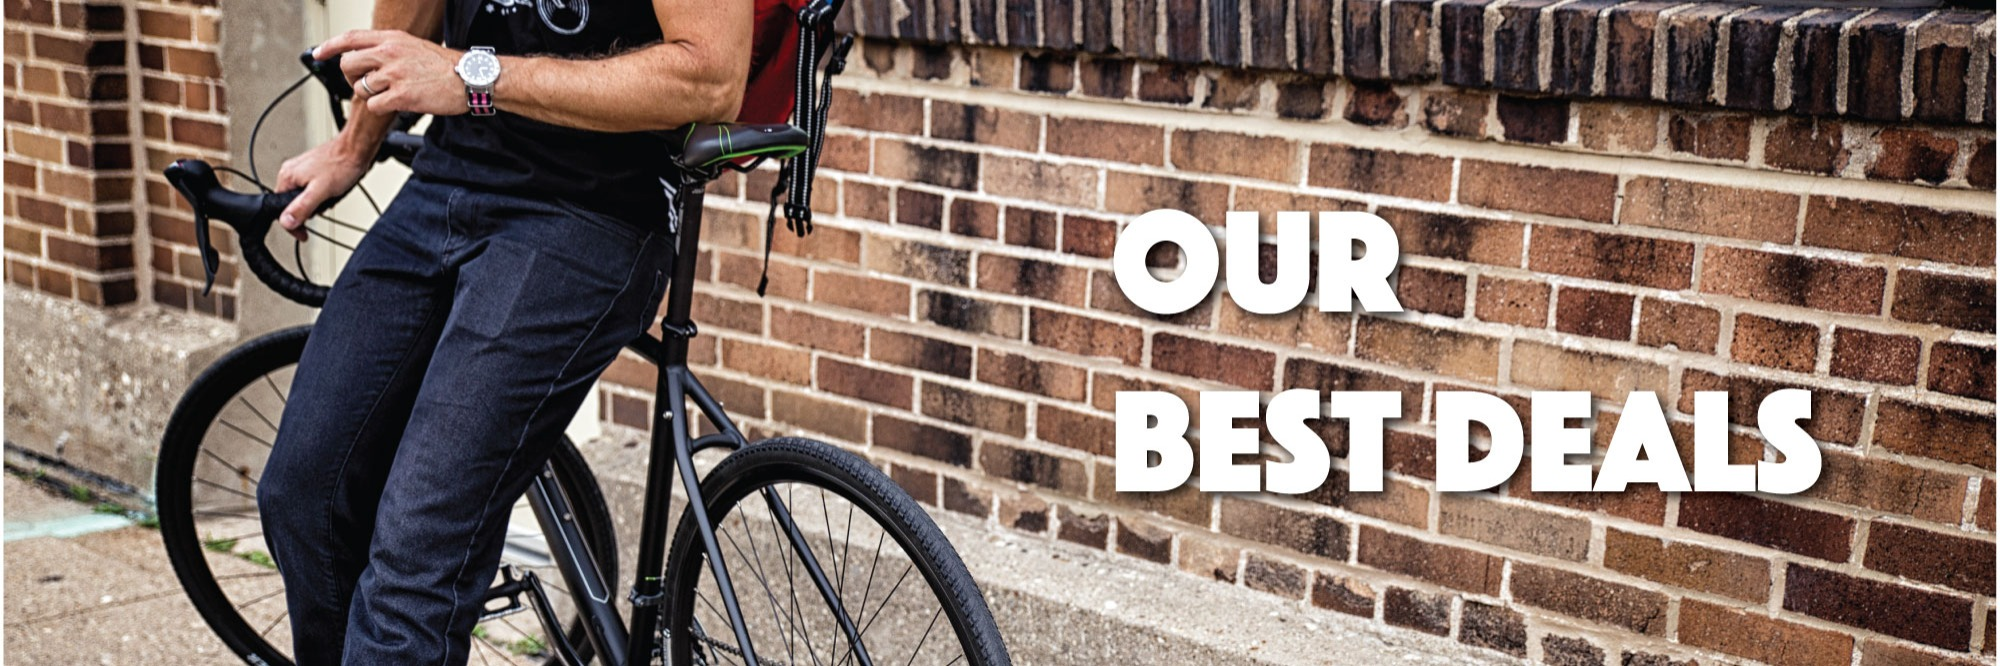 Shop Deals On Bikes And More